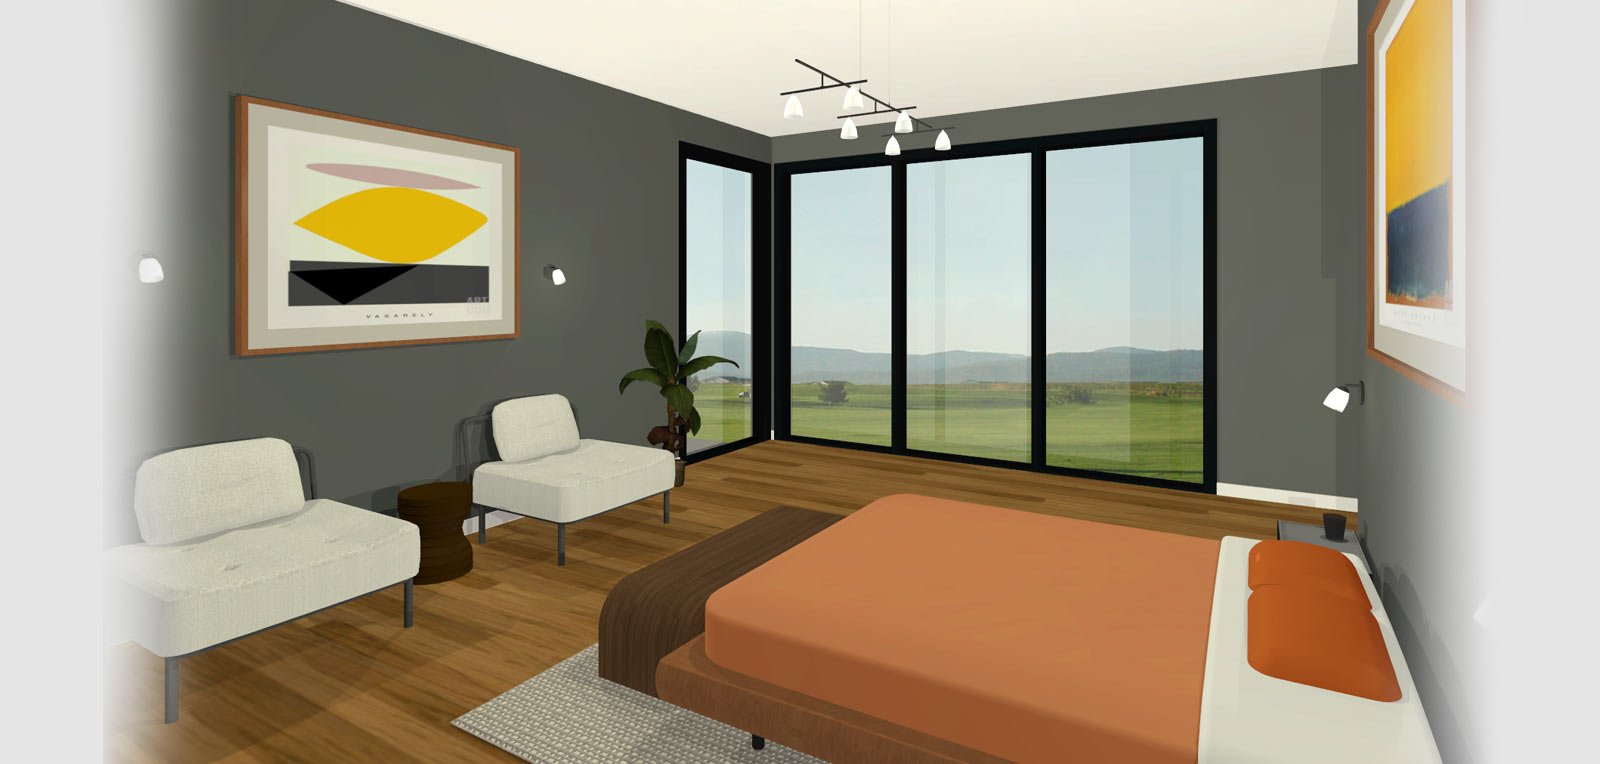 Home designer interior design software - Home interior design software ...